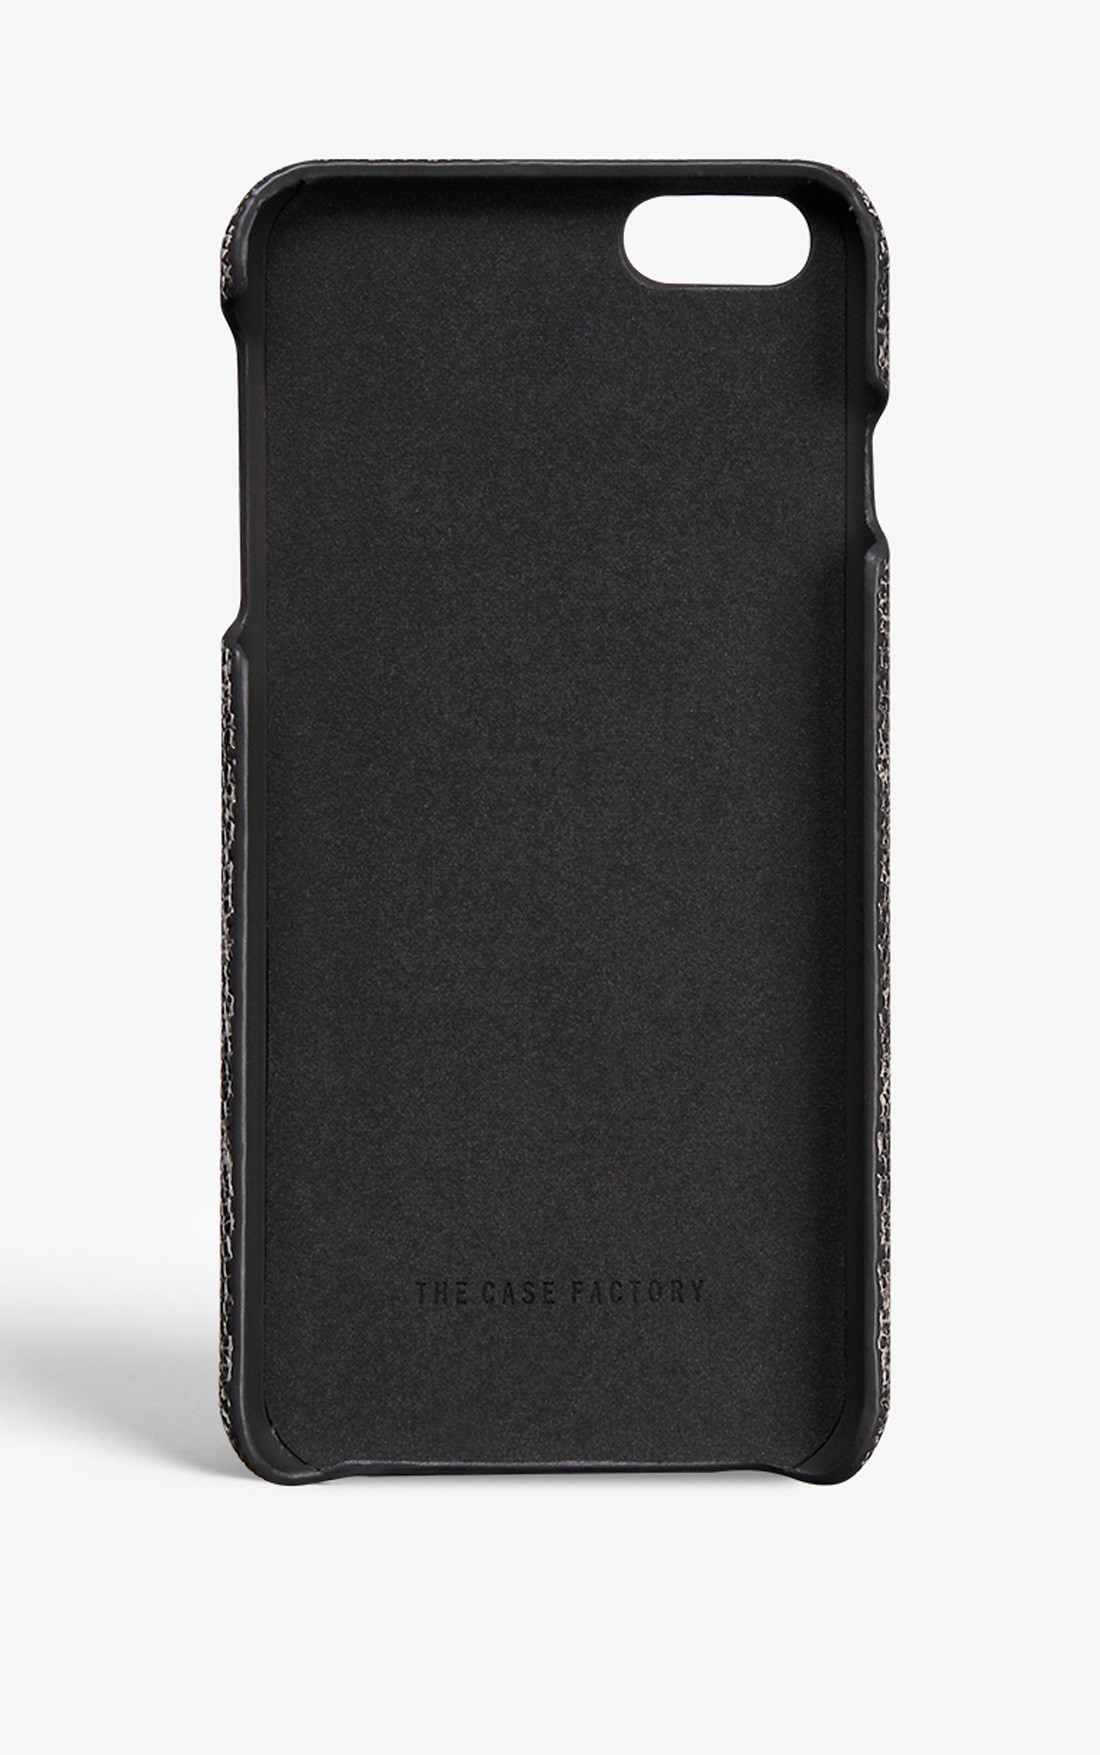 The Case Factory - Iguana Black iPhone 6 Plus (101482)